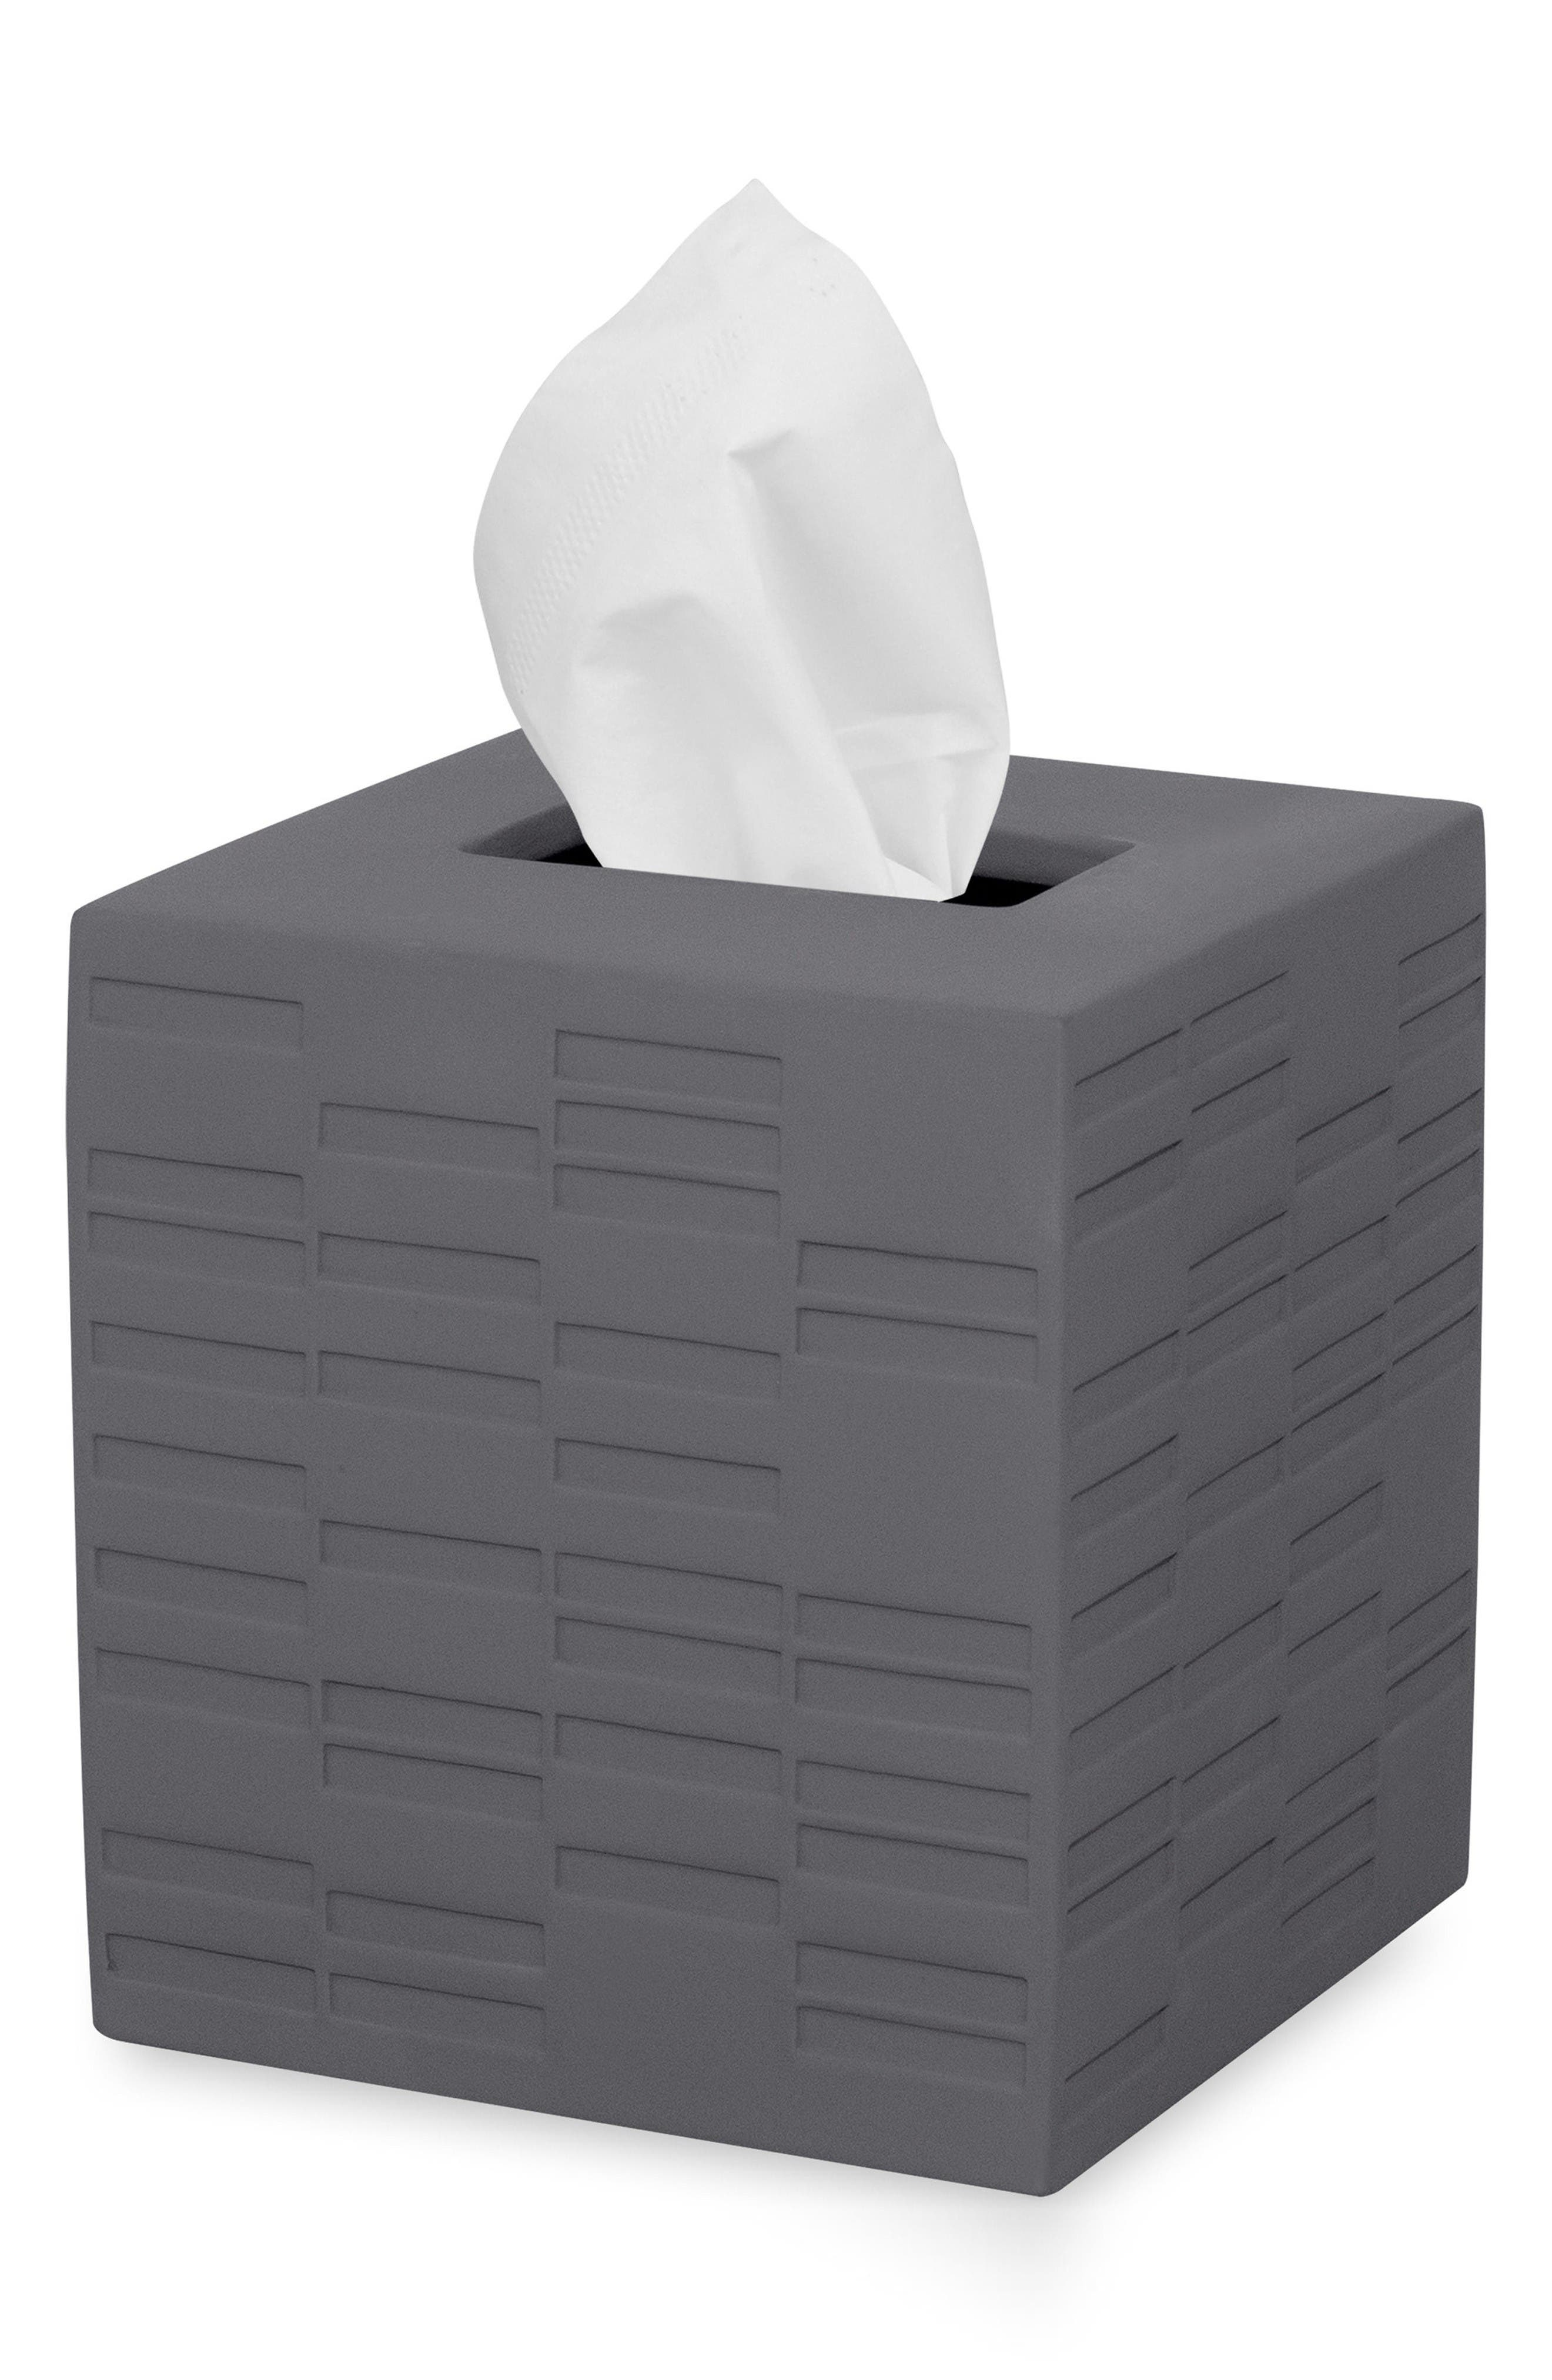 DKNY High Rise Tissue Box Cover